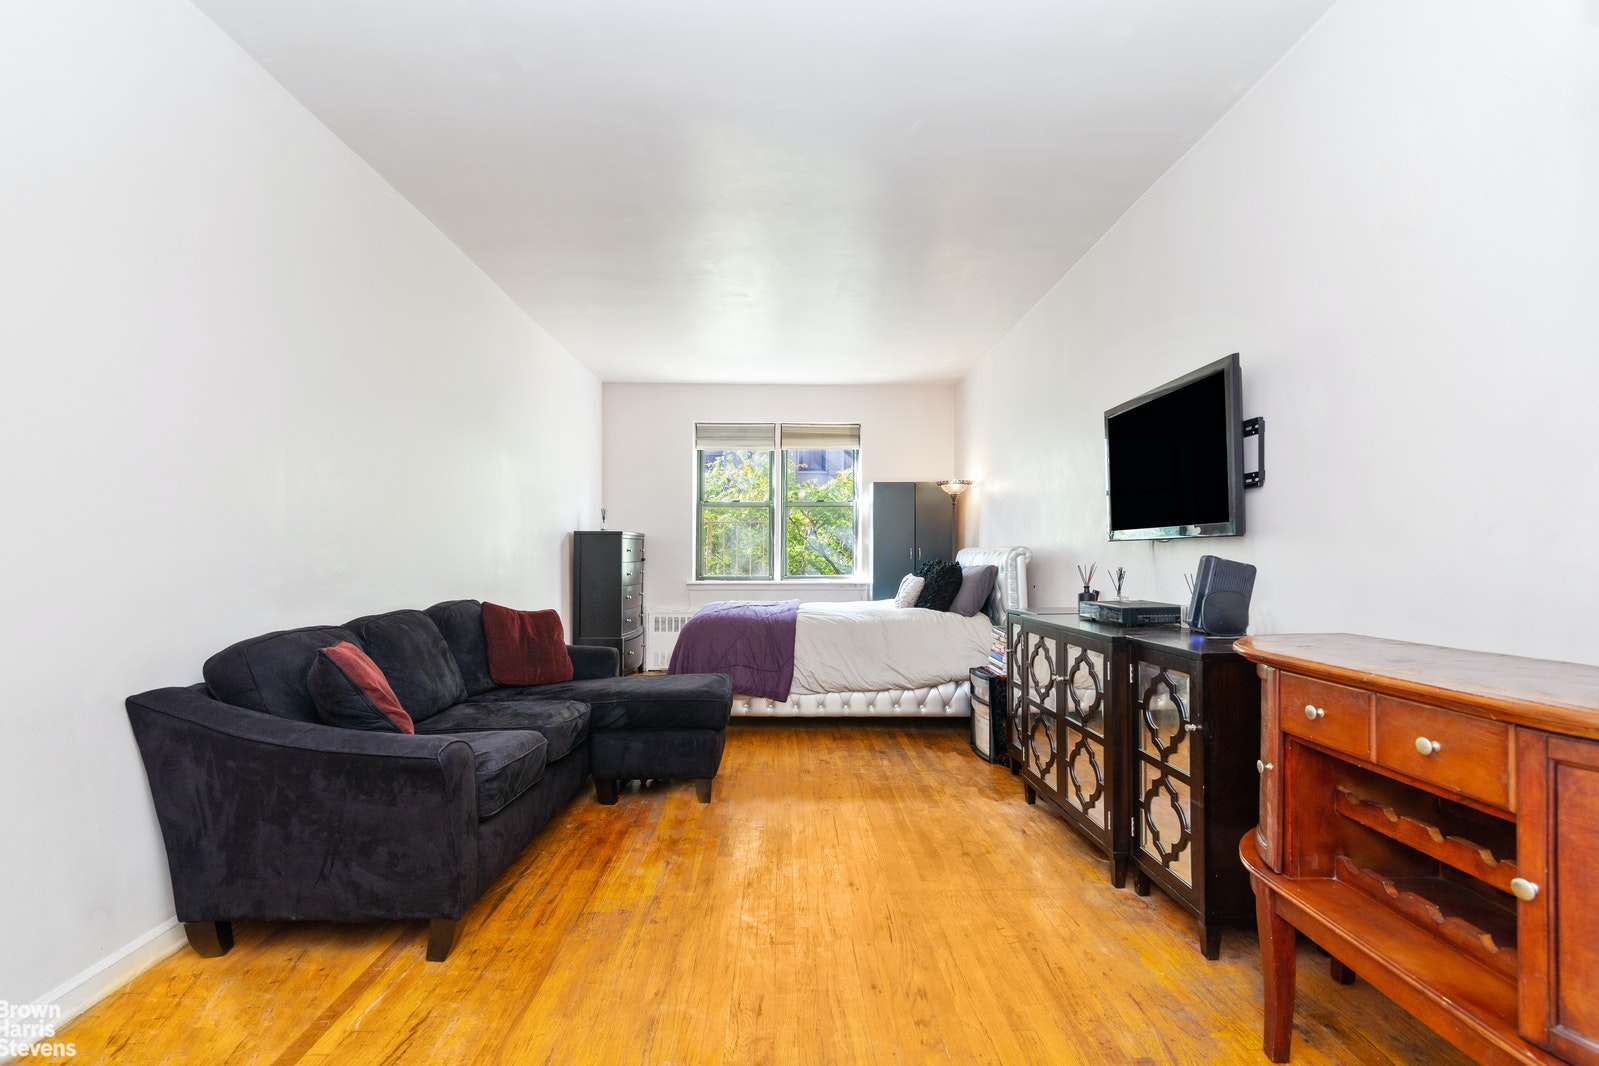 203 East 89th Street 3a, Upper East Side, NYC, 10128, $345,000, Property For Sale, Halstead Real Estate, Photo 2